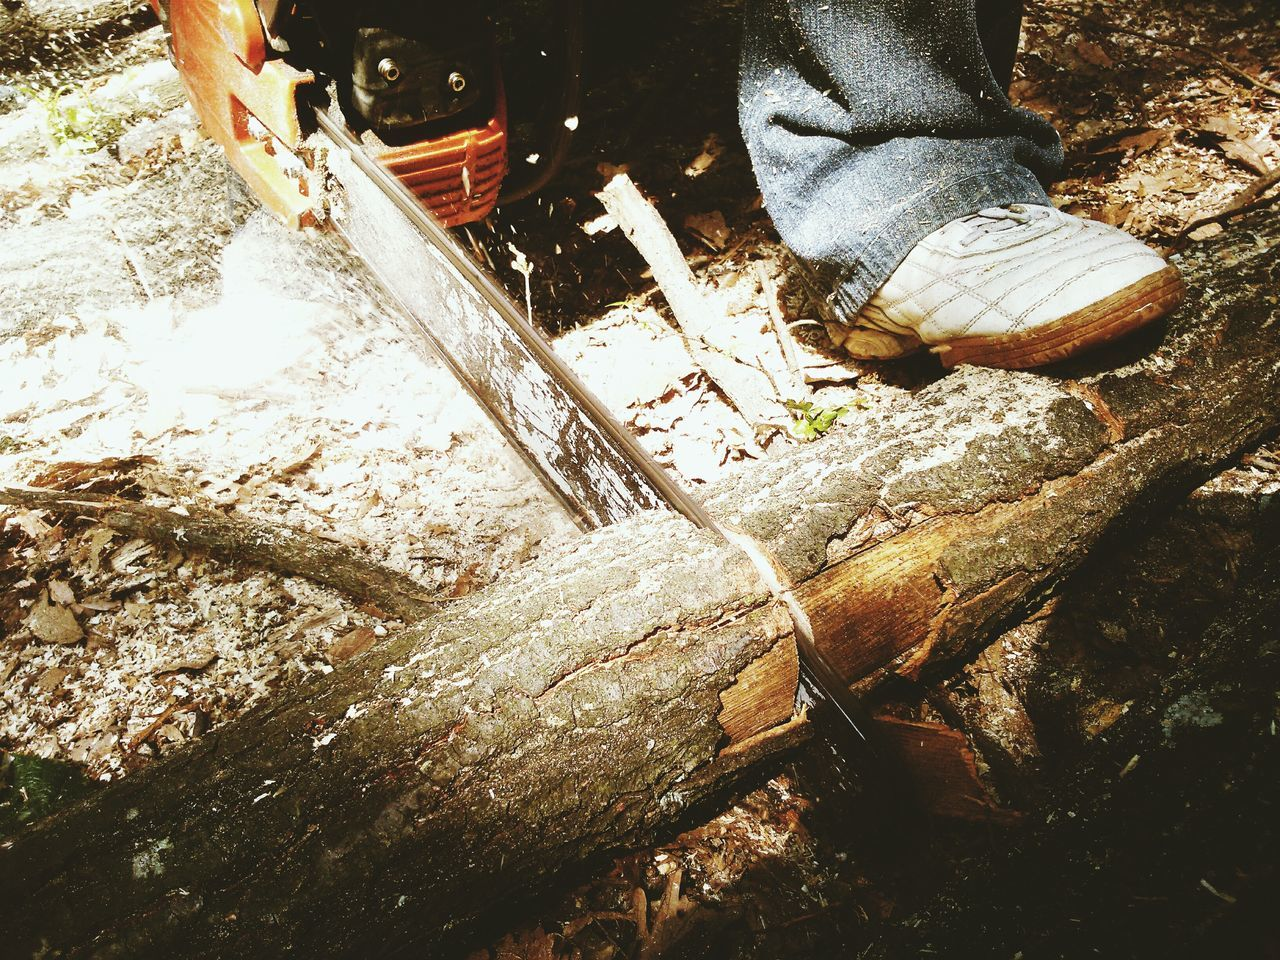 High angle view of person cutting wood with chainsaw